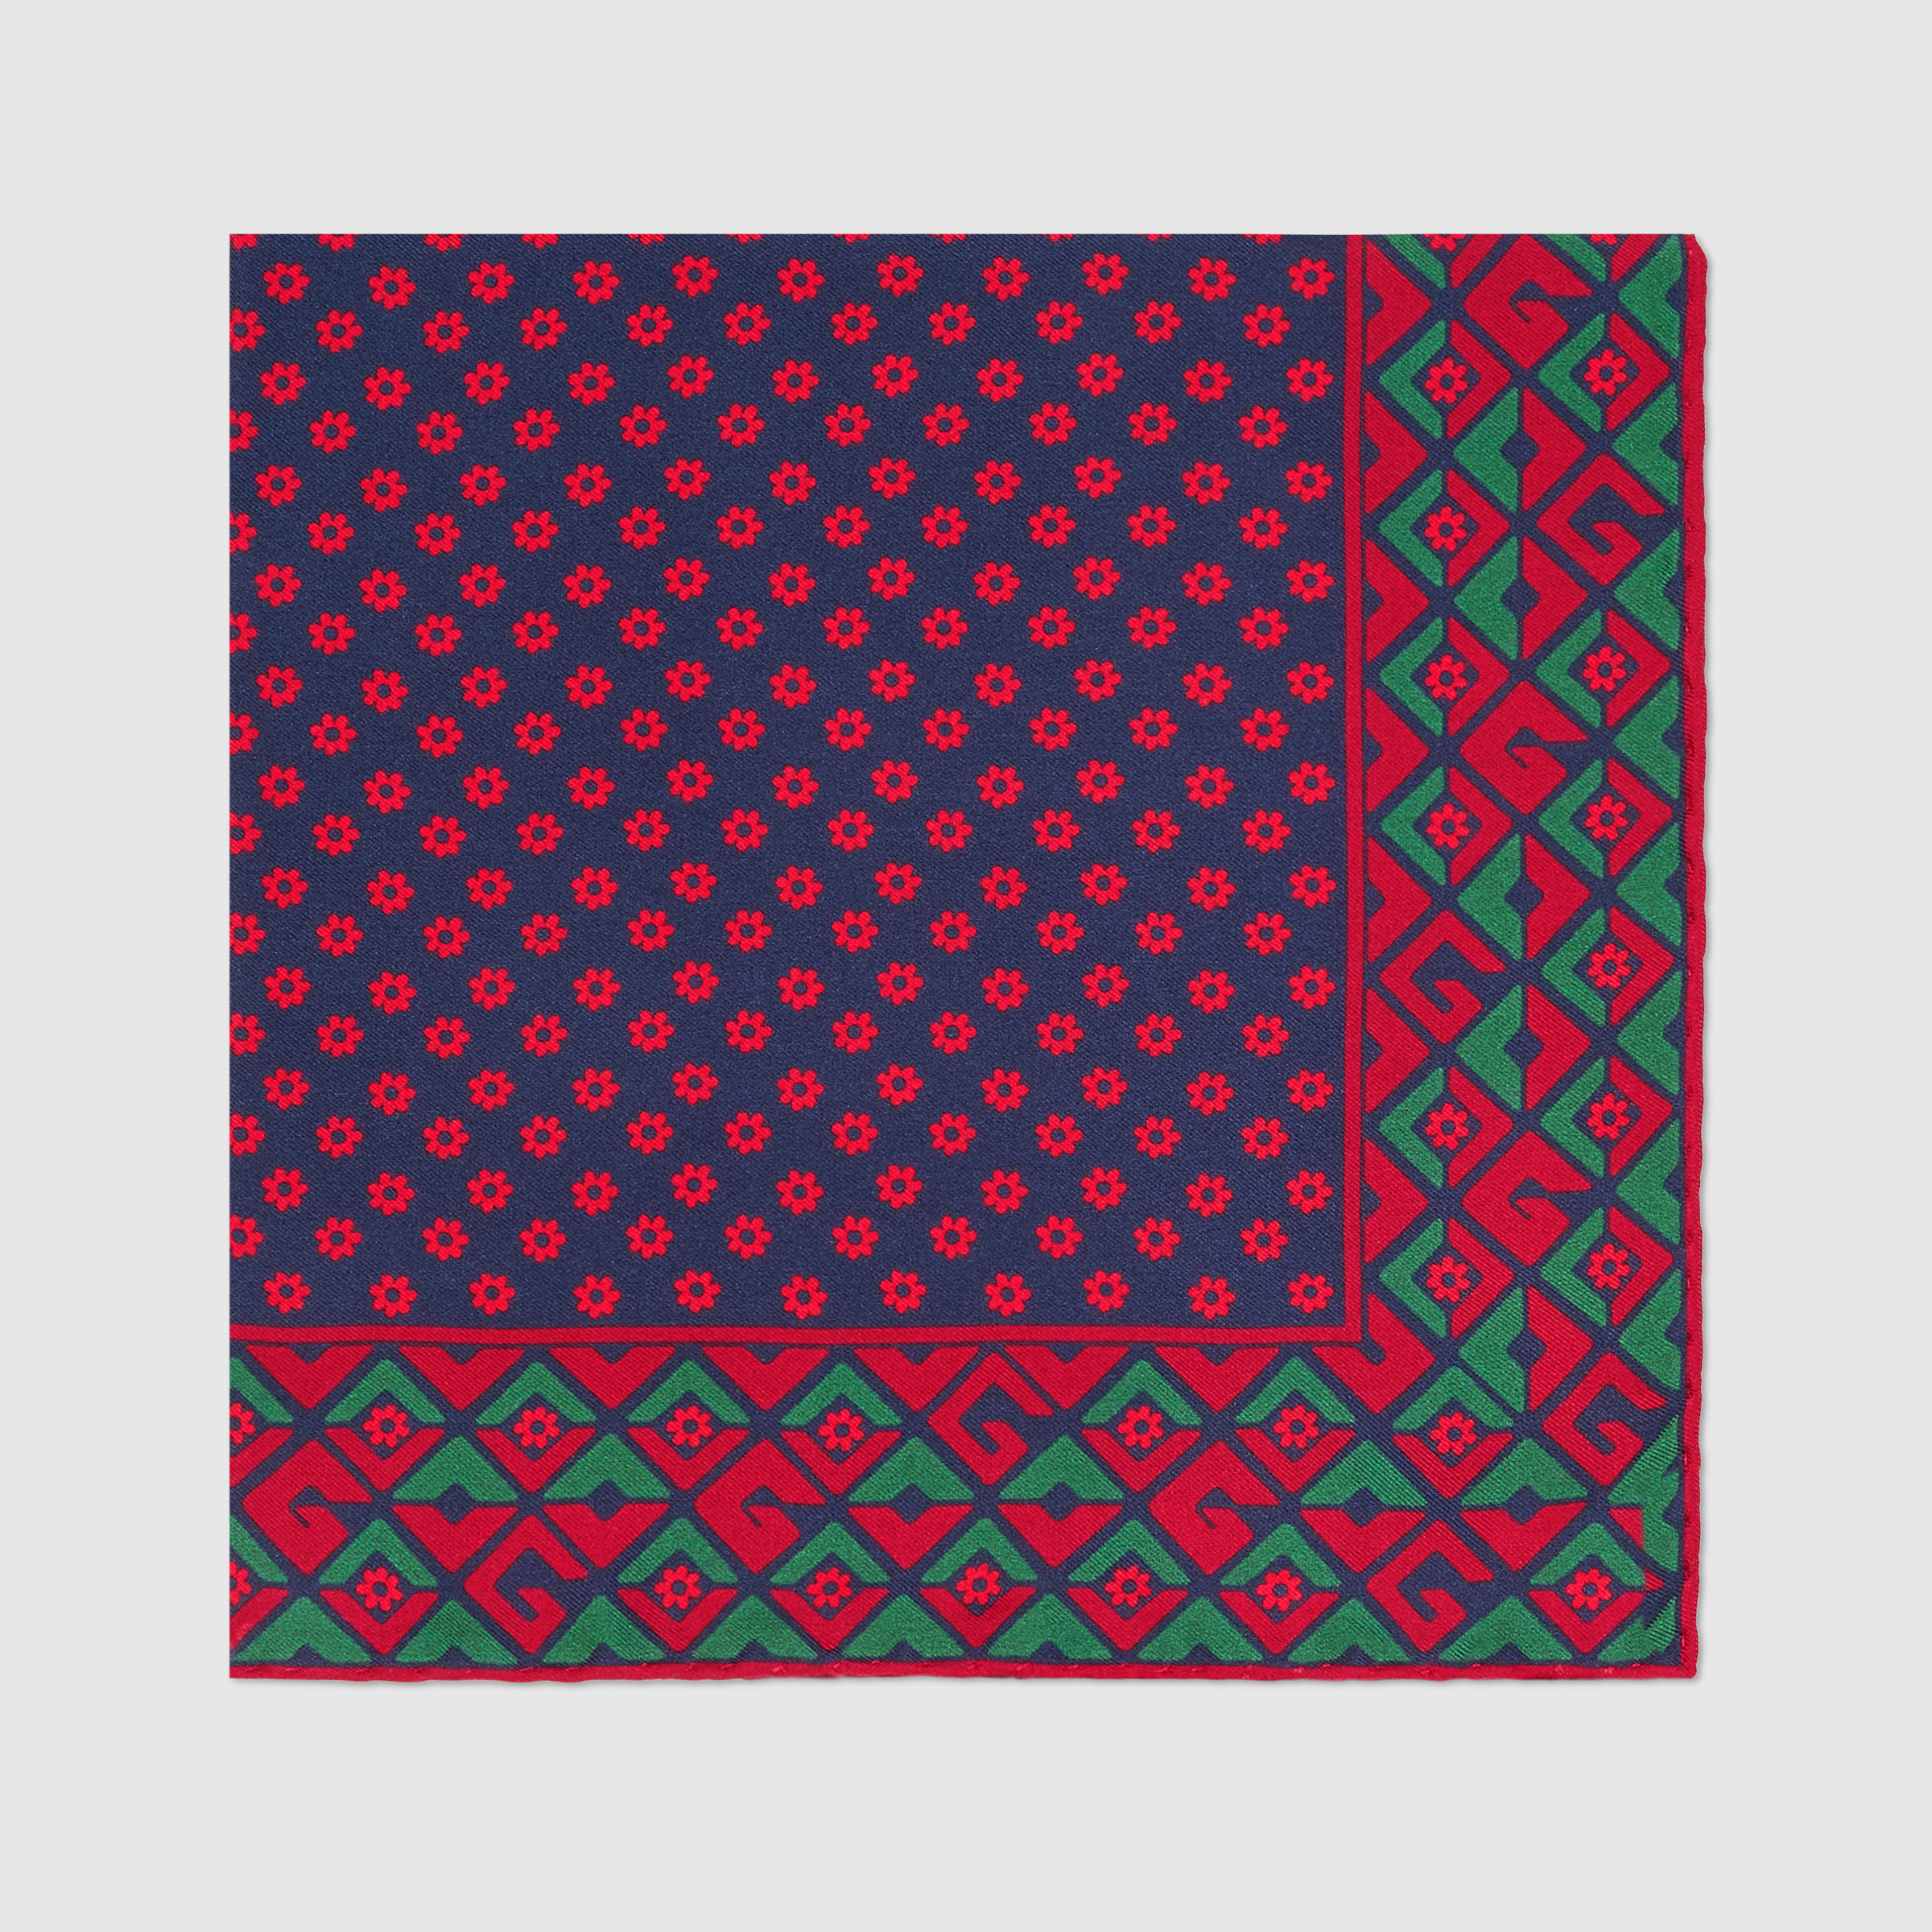 유럽직배송 구찌 GUCCI Geometric G print silk pocket square 5217434G0014273